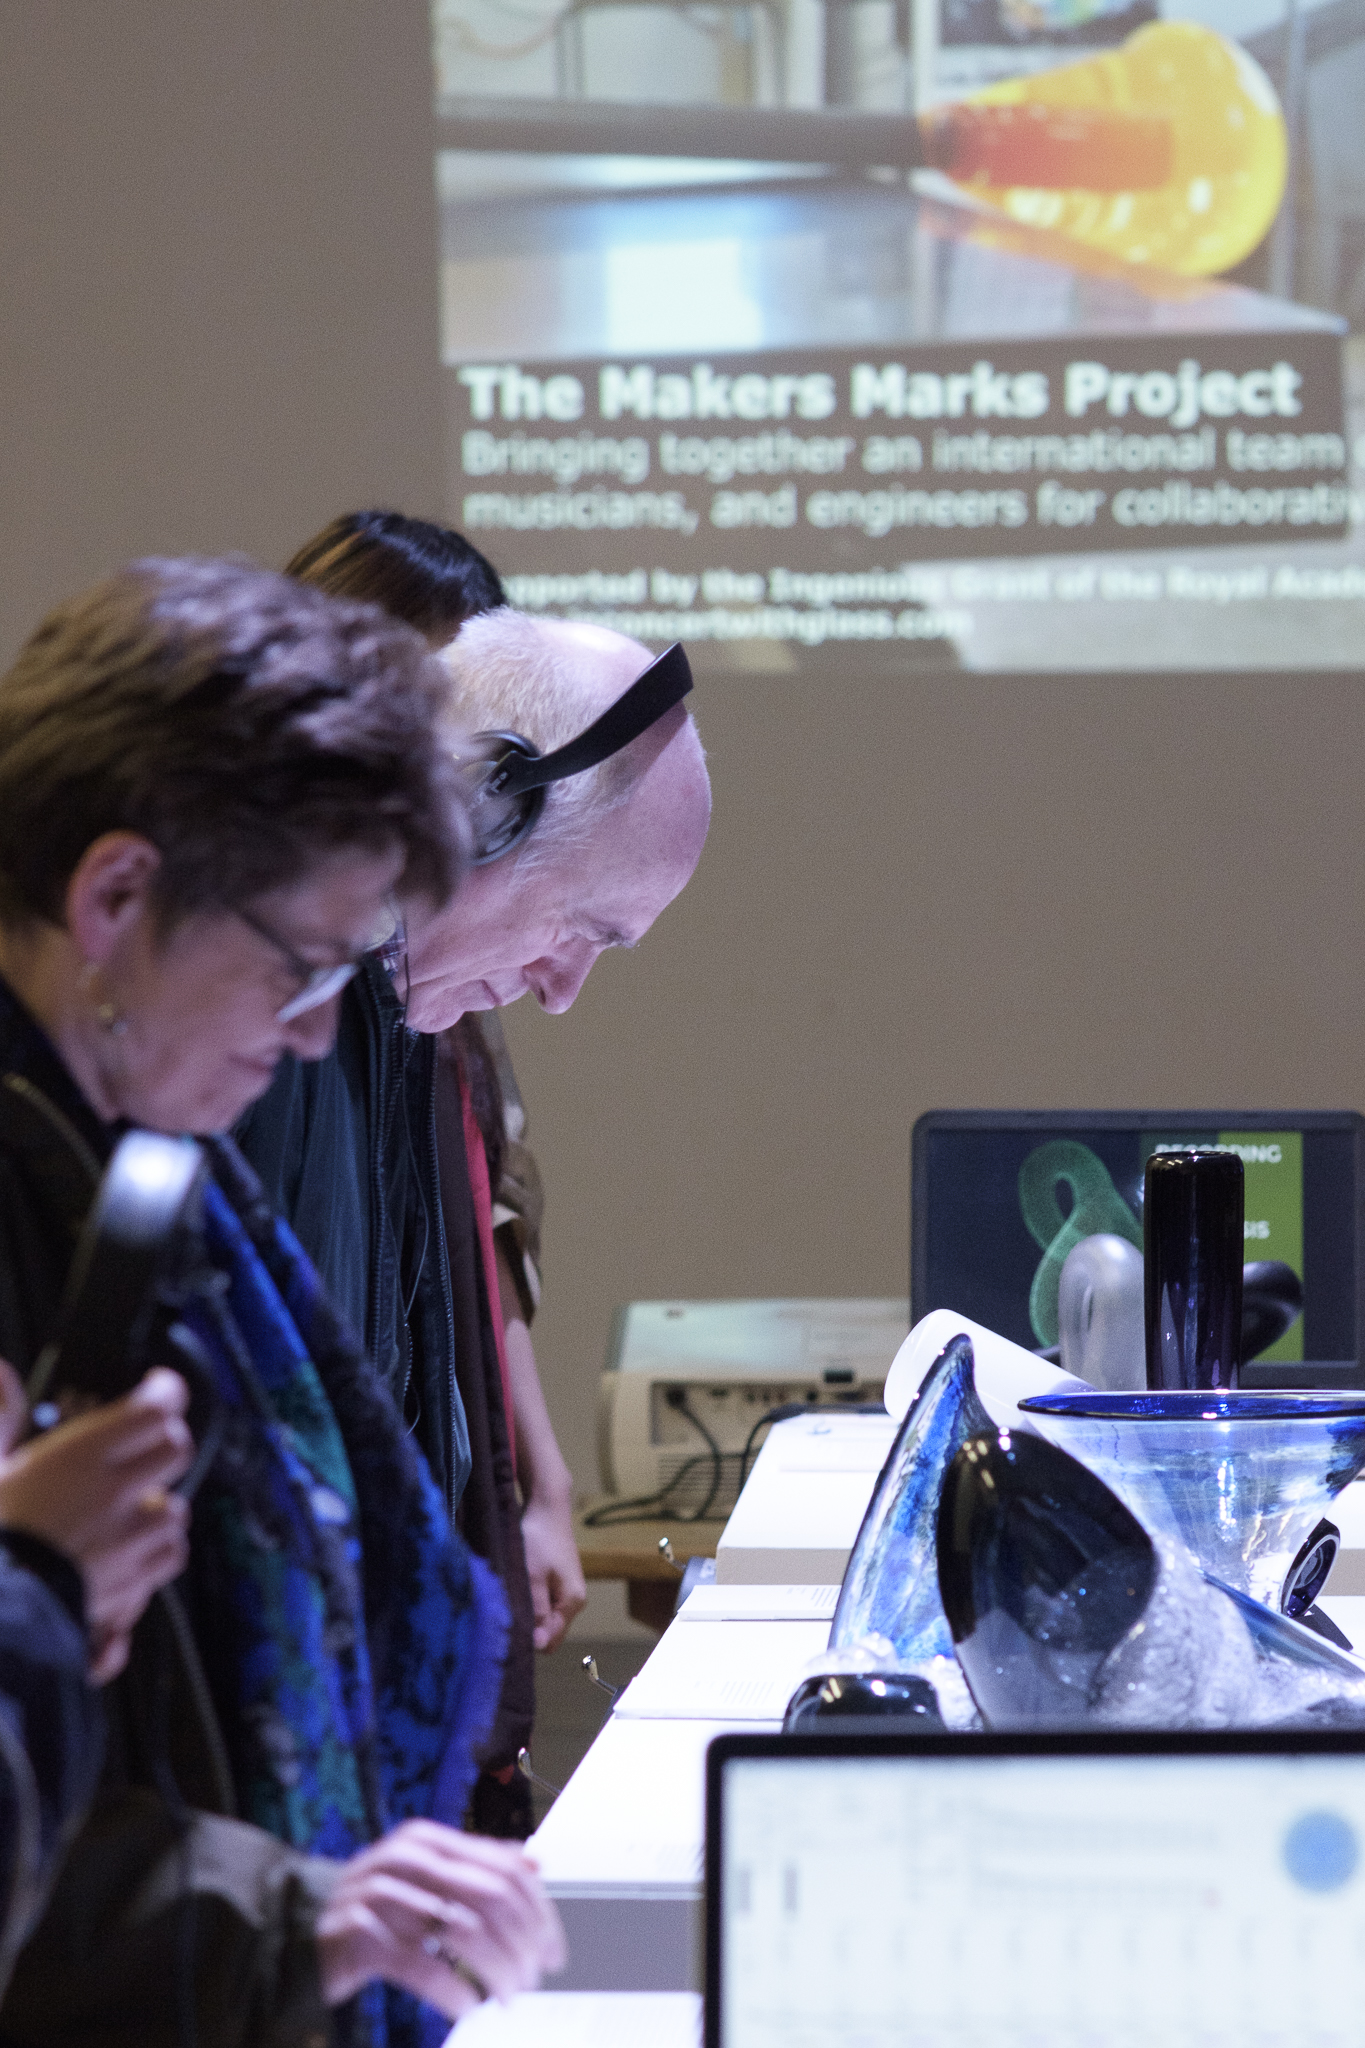 Makers Marks in exhibition at Summerhall, Edinburgh